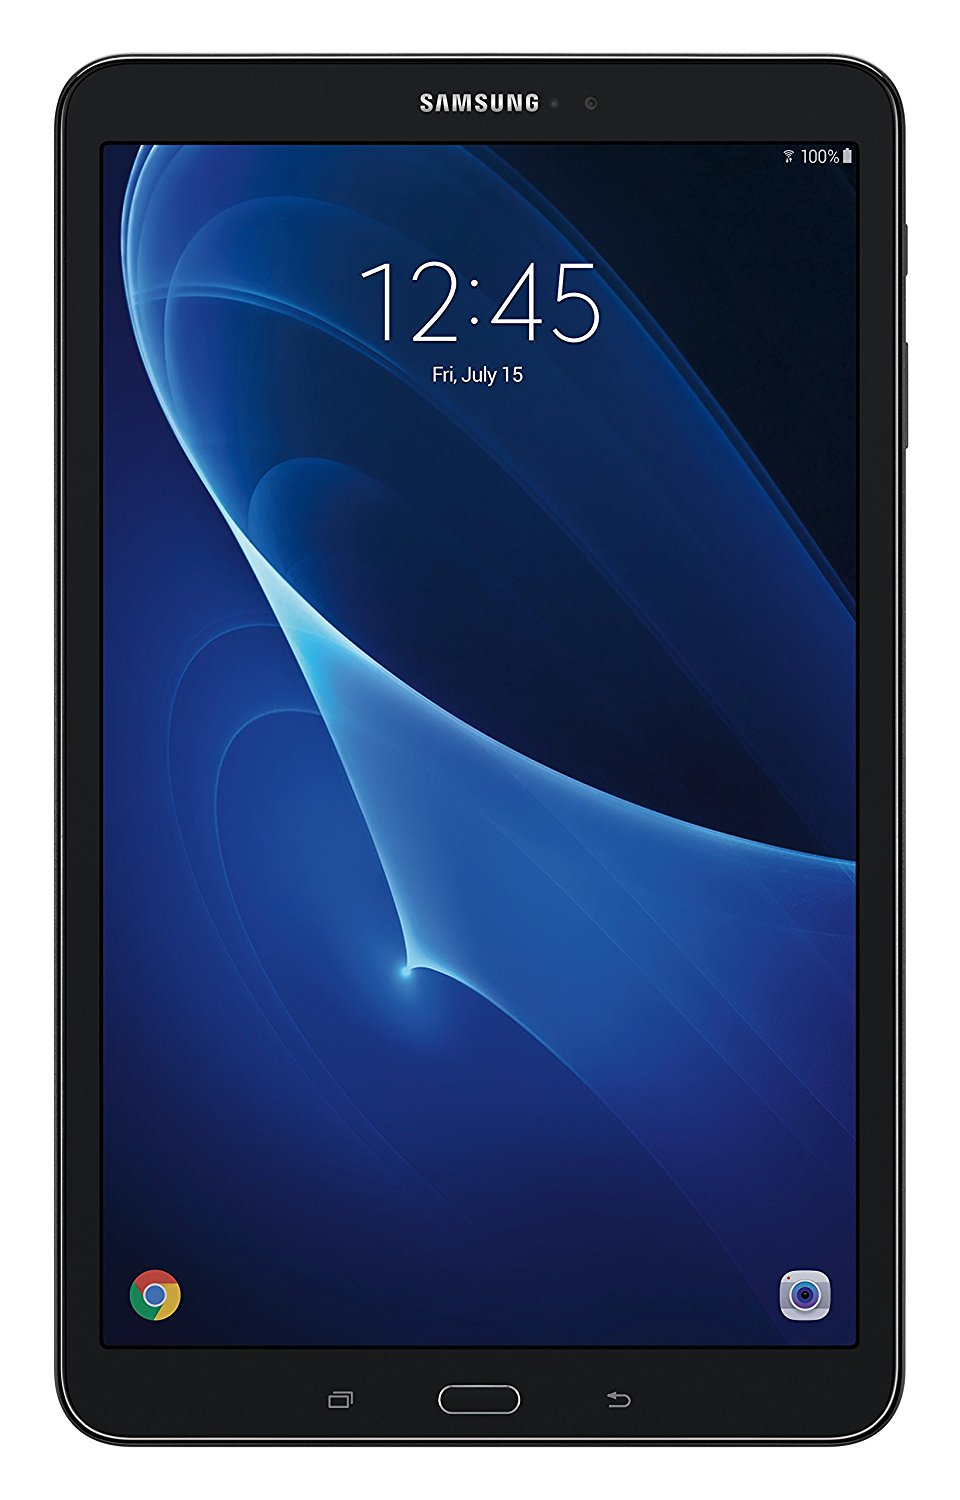 Samsung Samsung Galaxy Tab A with 10.1-Inch Display, 16GB Memory. Available in 2 Colors and With or Without S Pen